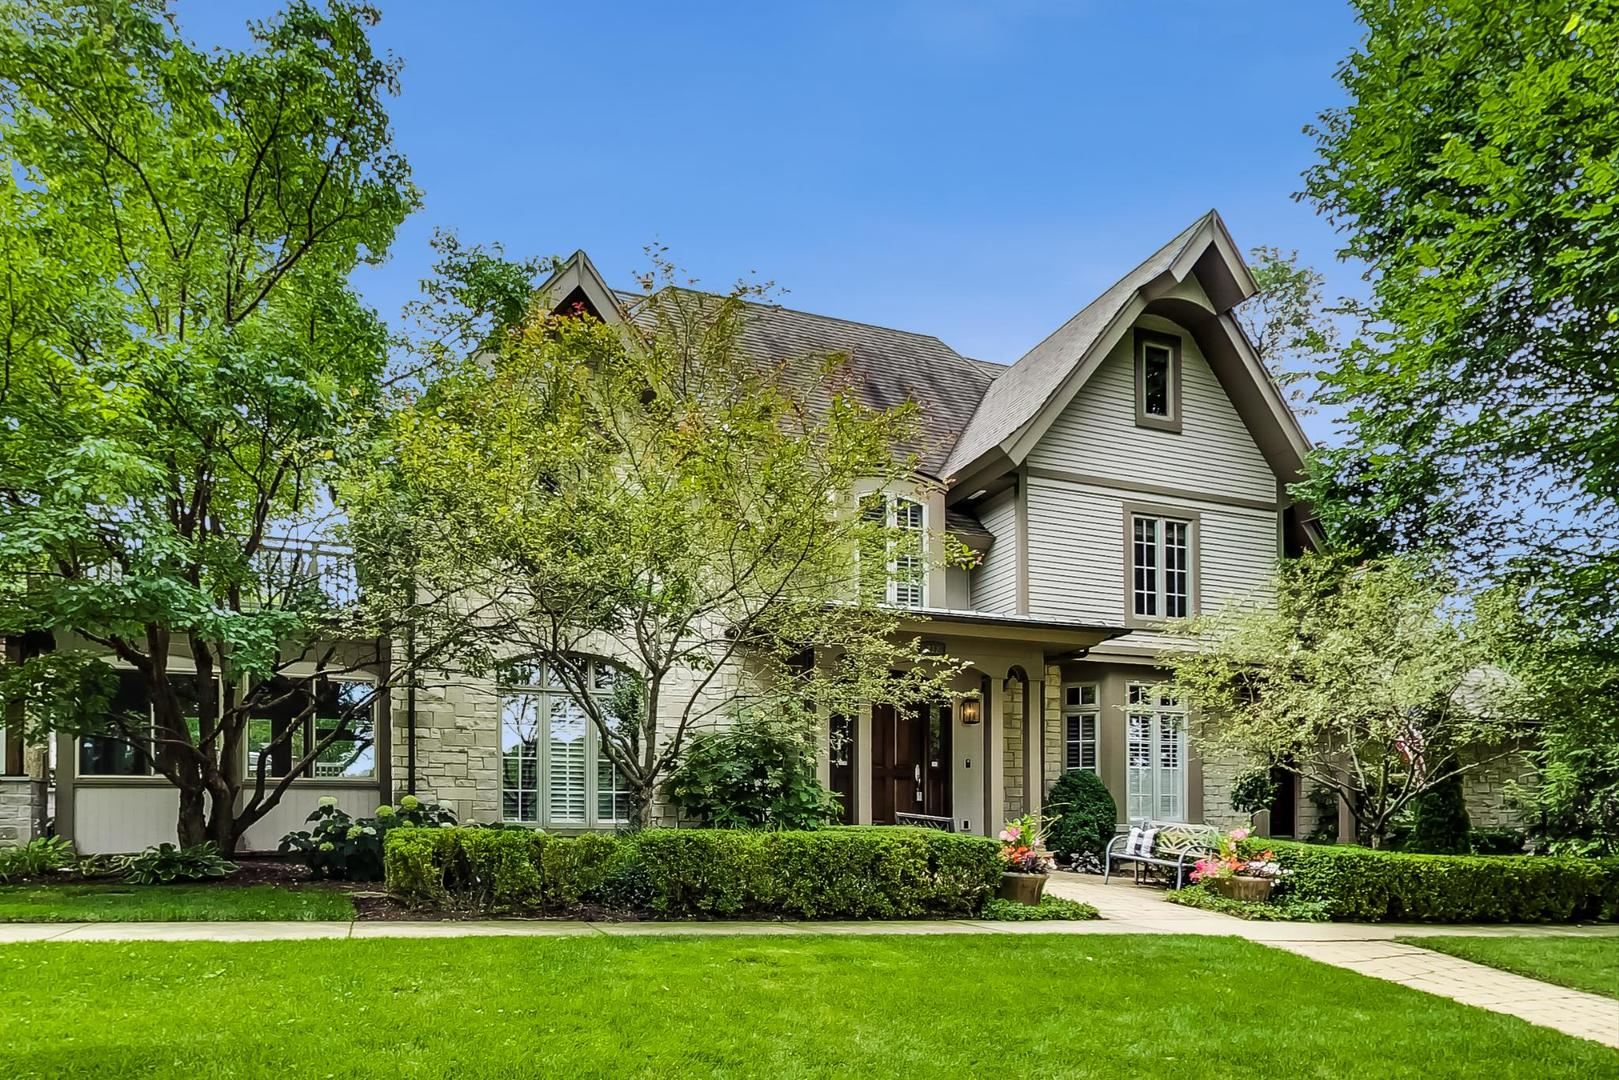 222 W 7th Street, Hinsdale, IL 60521 - #: 10789664